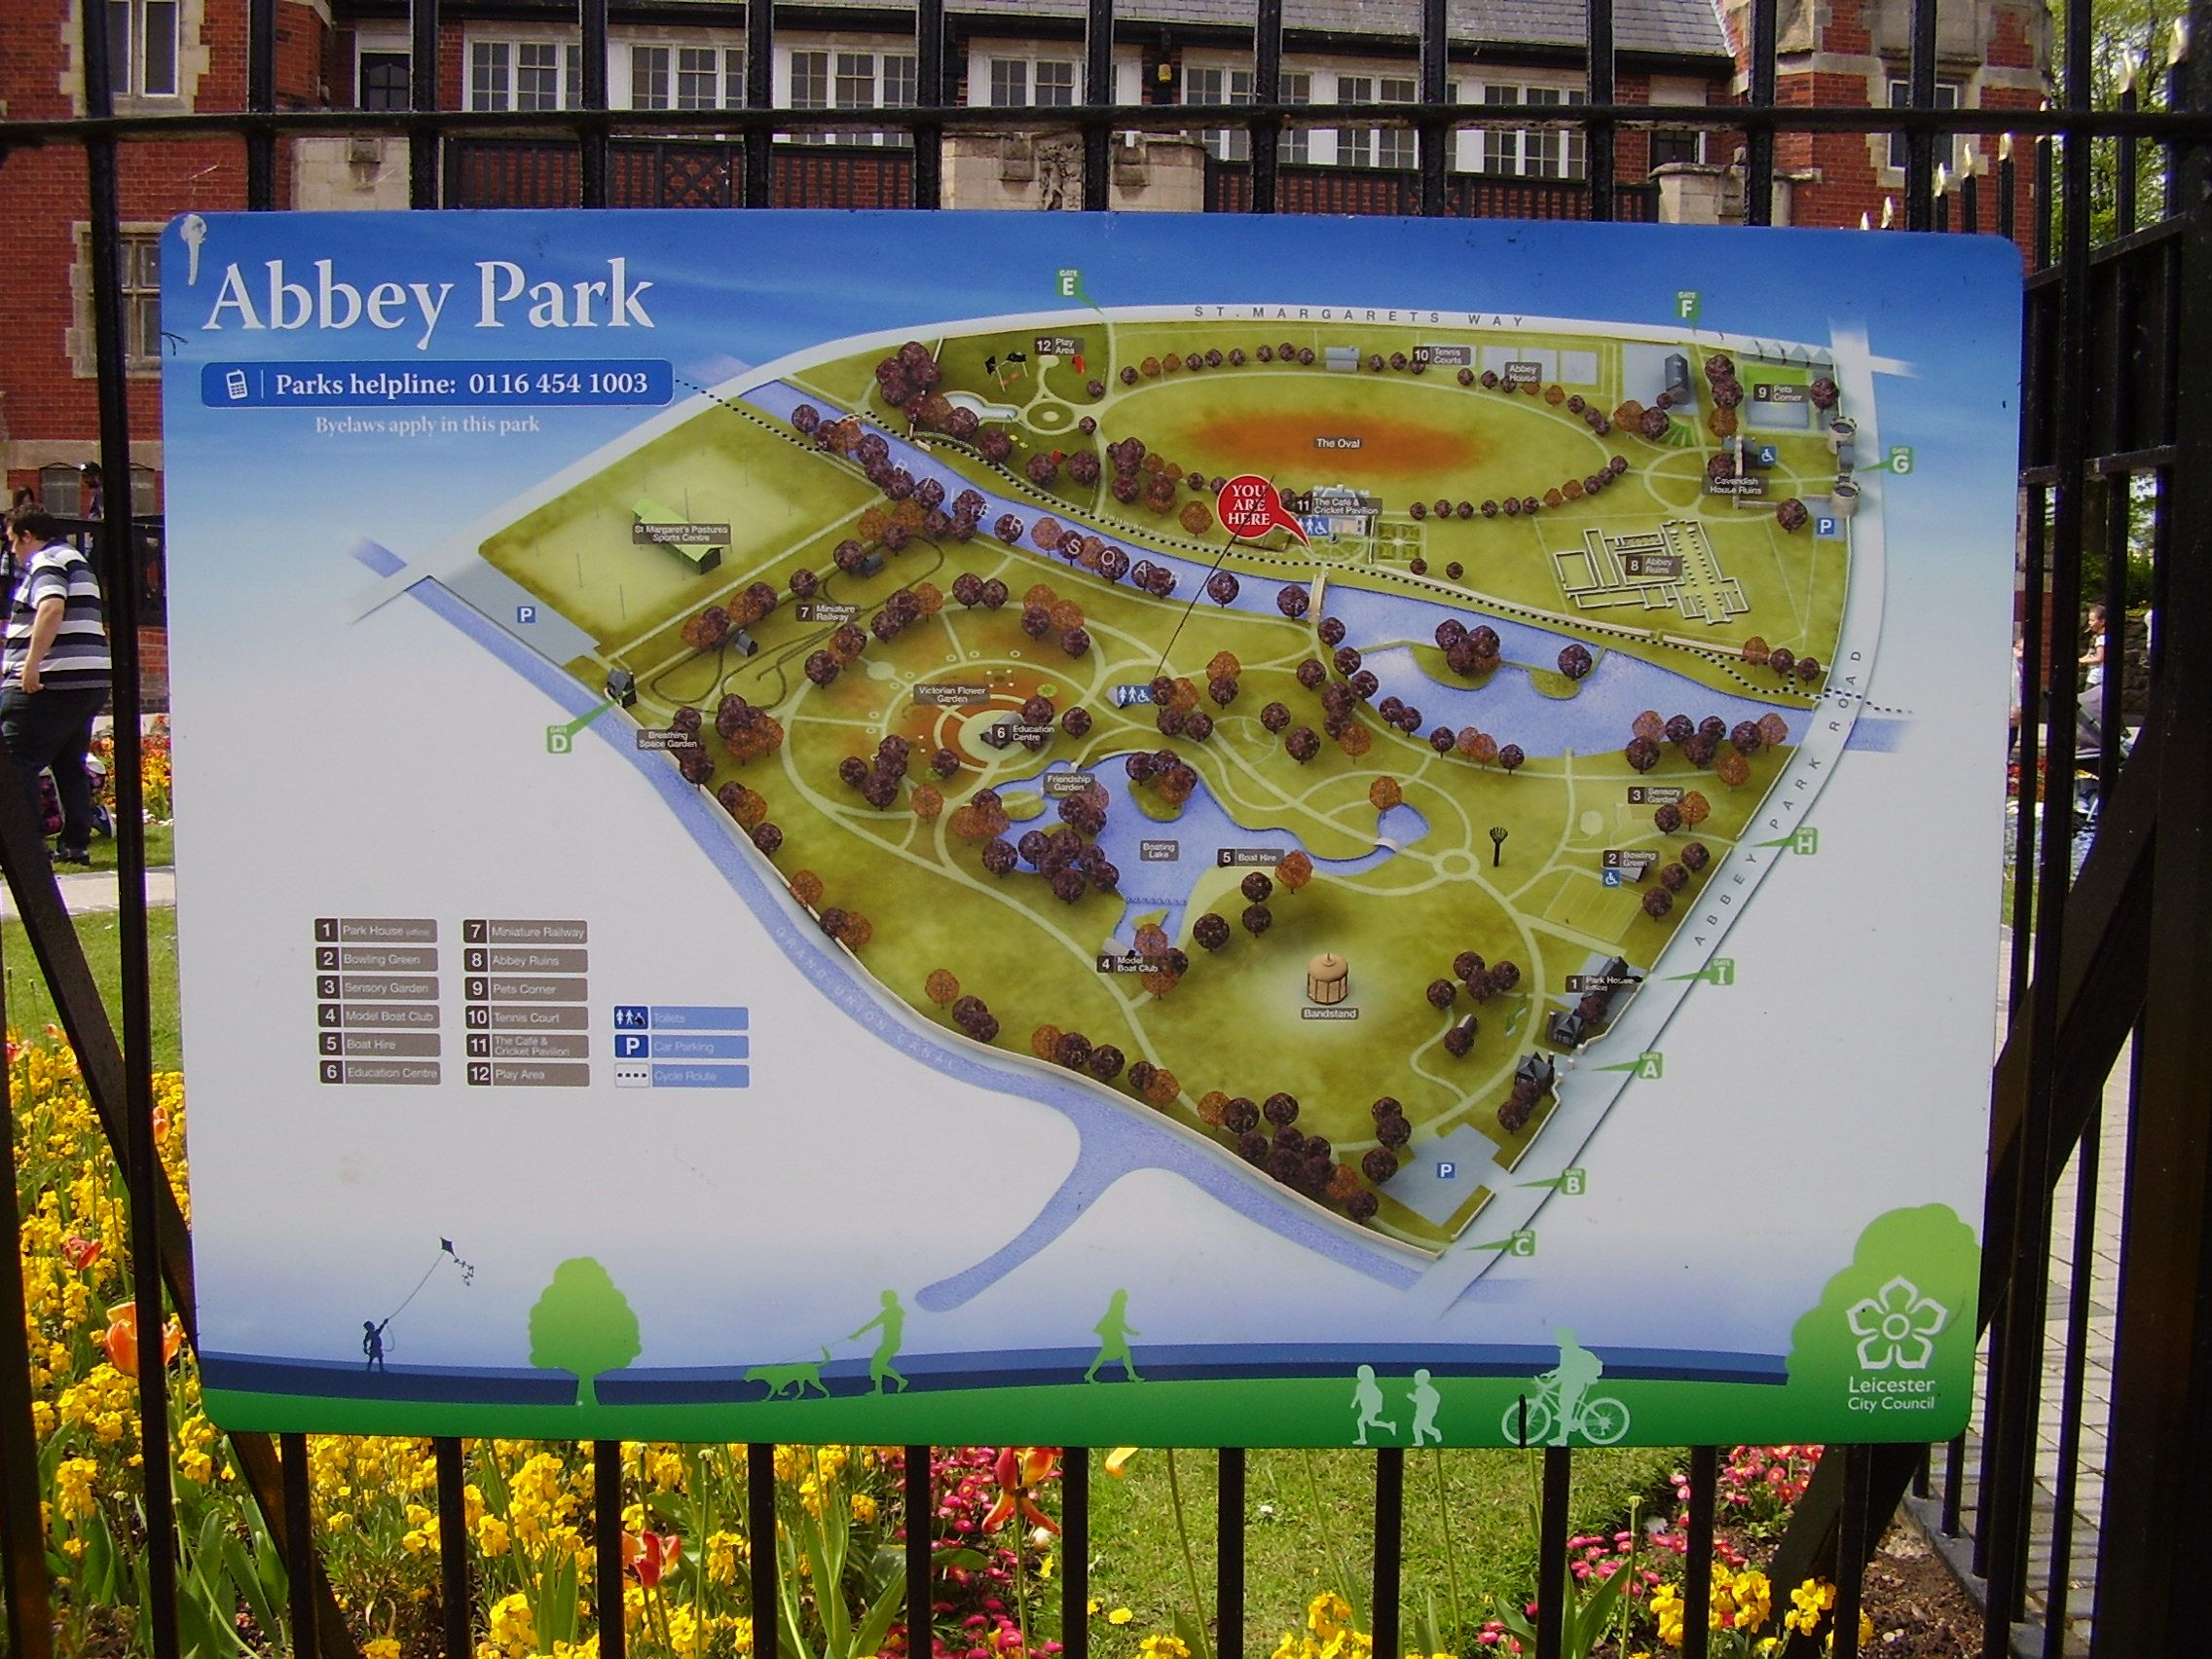 Map Of England Leicester.Map Of Abbey Park Leicester England 1 Edward S Favourites